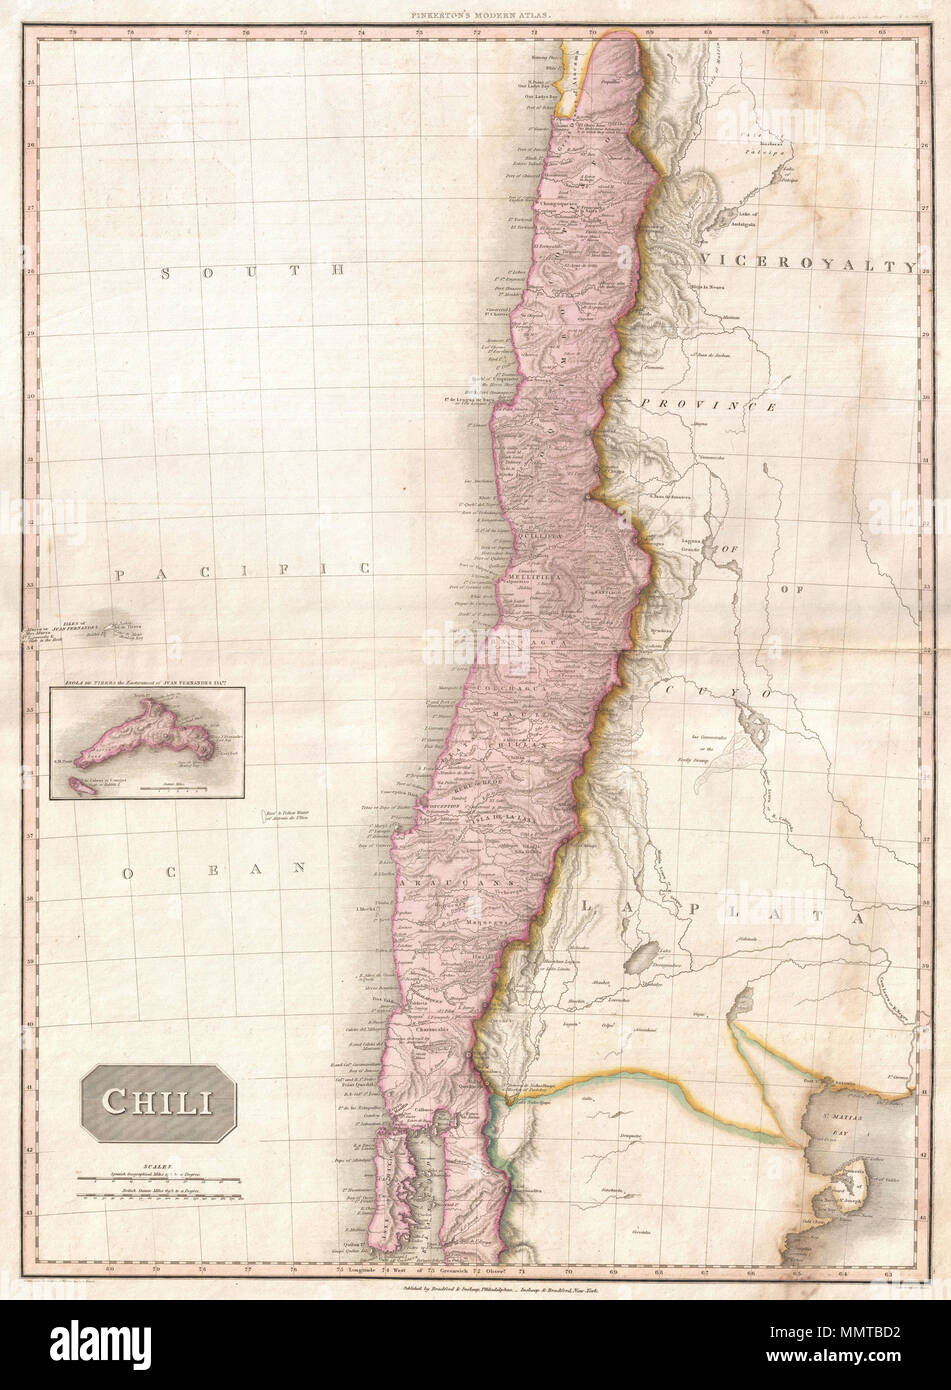 English: This is John Pinkerton's stunning 1818 map of Chile. Covers on